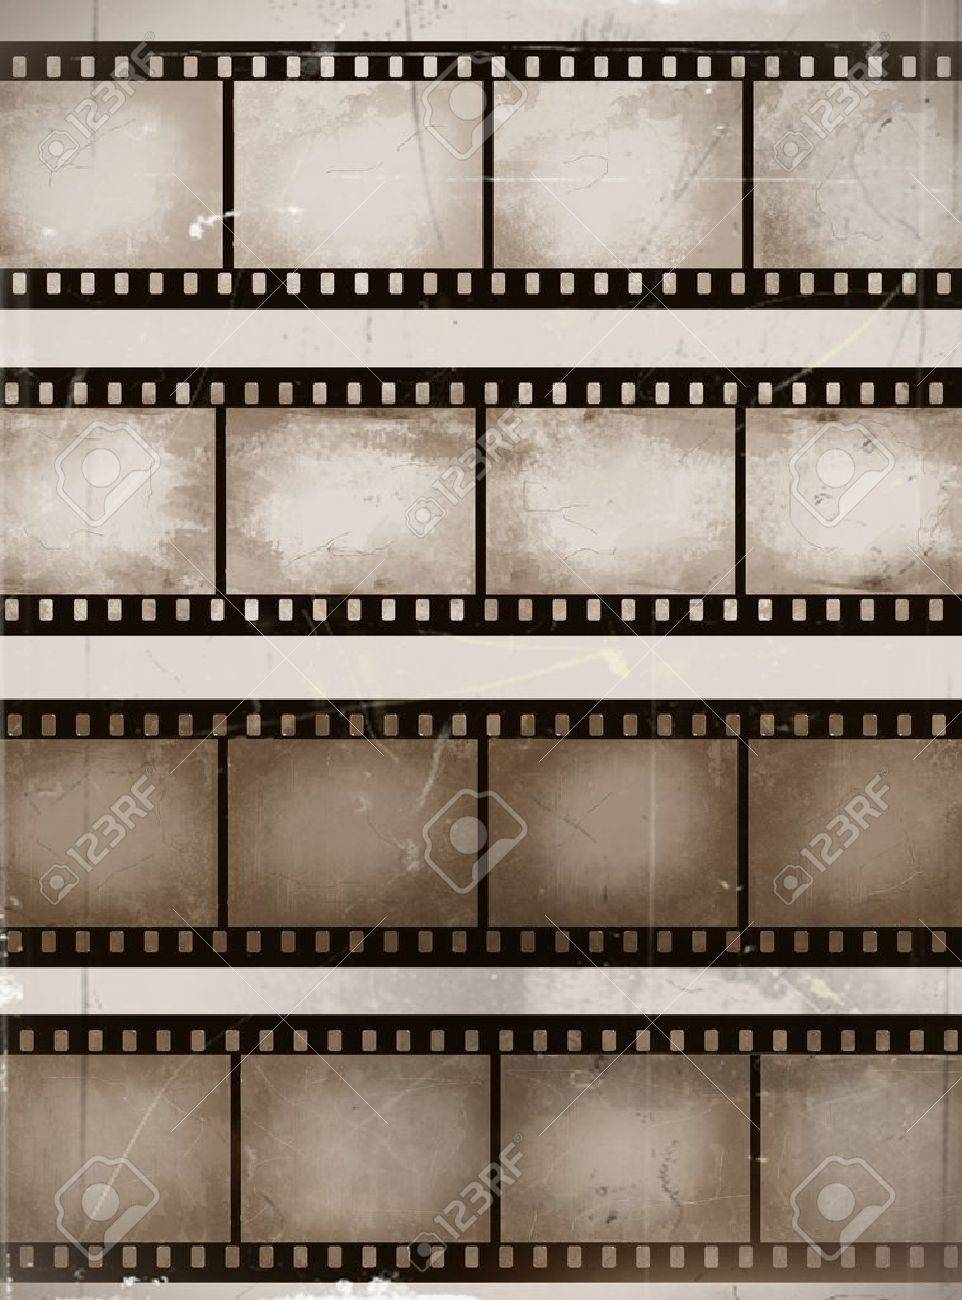 Vintage Scratched Seamless Film Strips Or Frame Collection Royalty ...